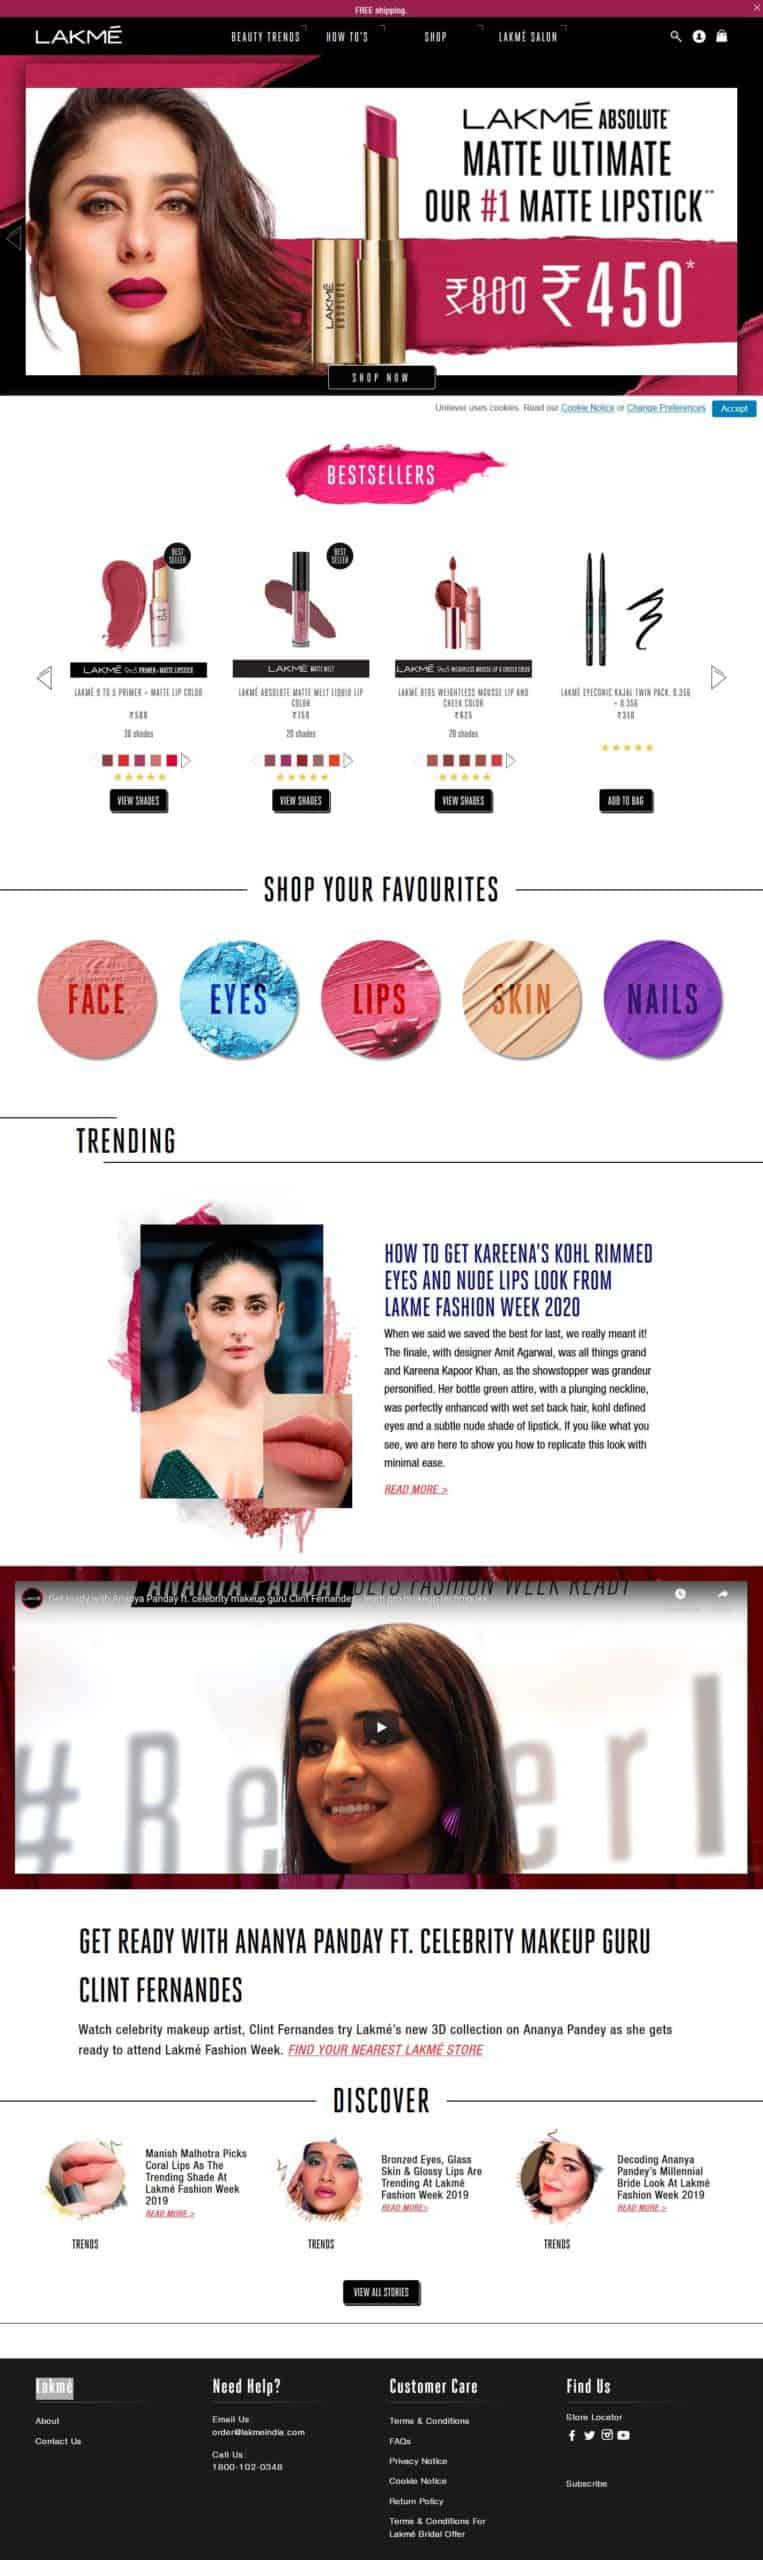 Lakme Website screenshot Professional Cosmetic & Beauty Online Shop | Uddfel Technologies Limited